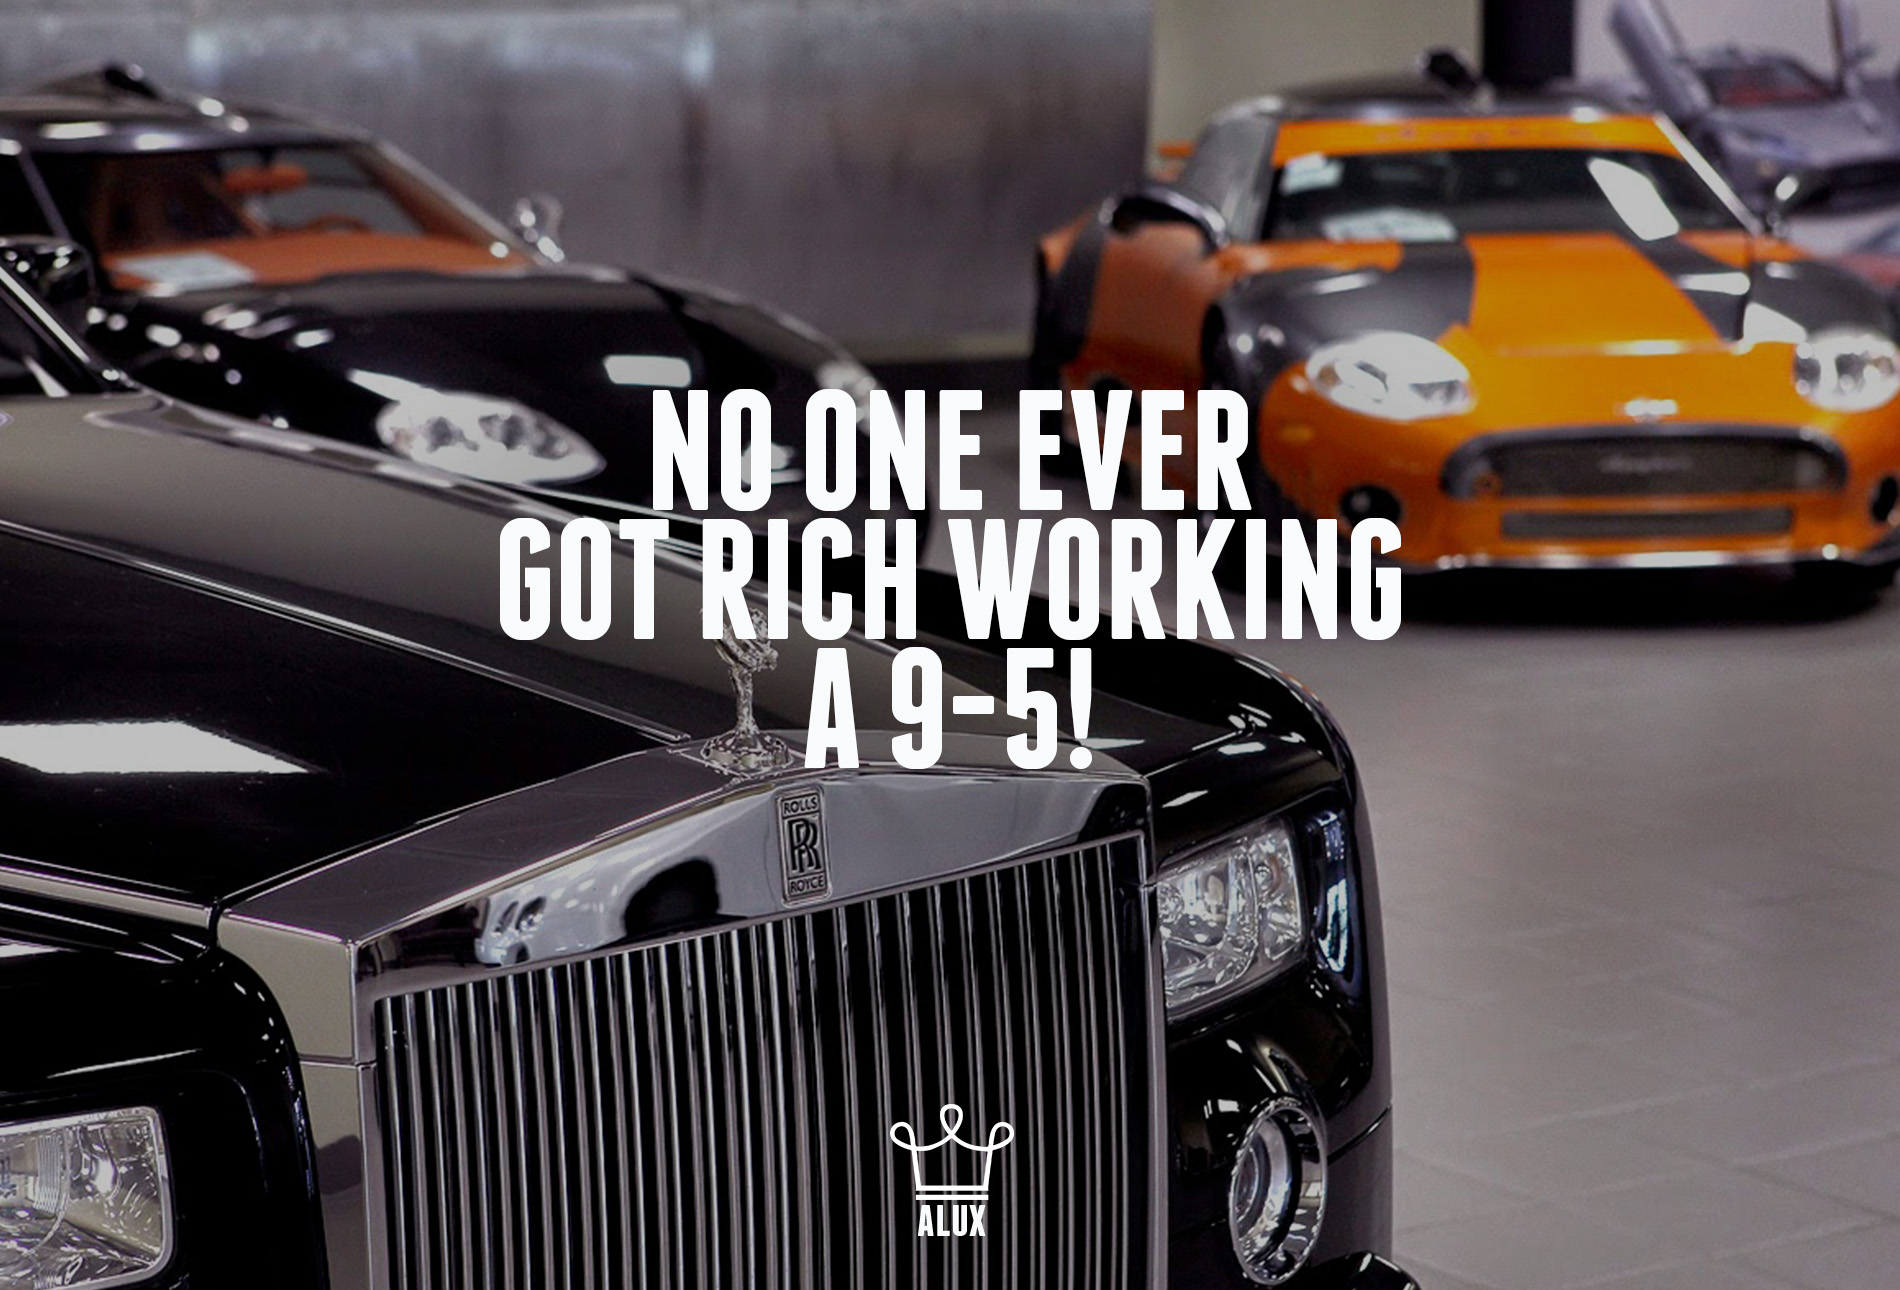 no one ever got rich working 9 to 5